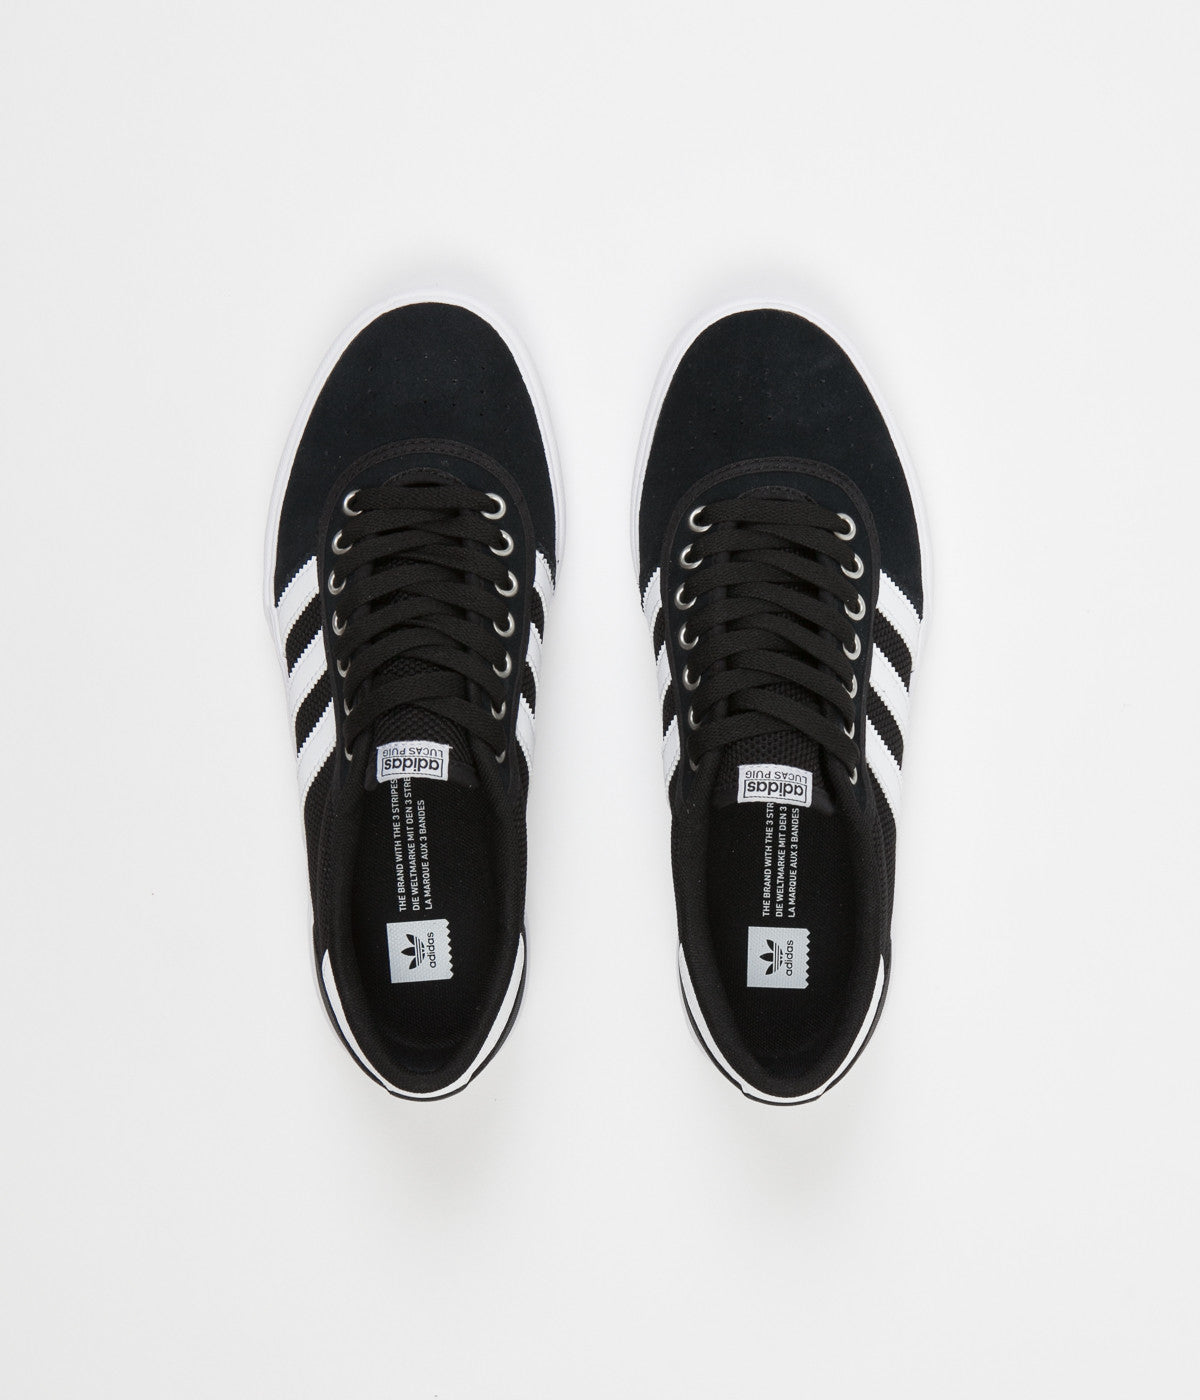 Adidas Lucas Premiere ADV Shoes - Core Black / White / White